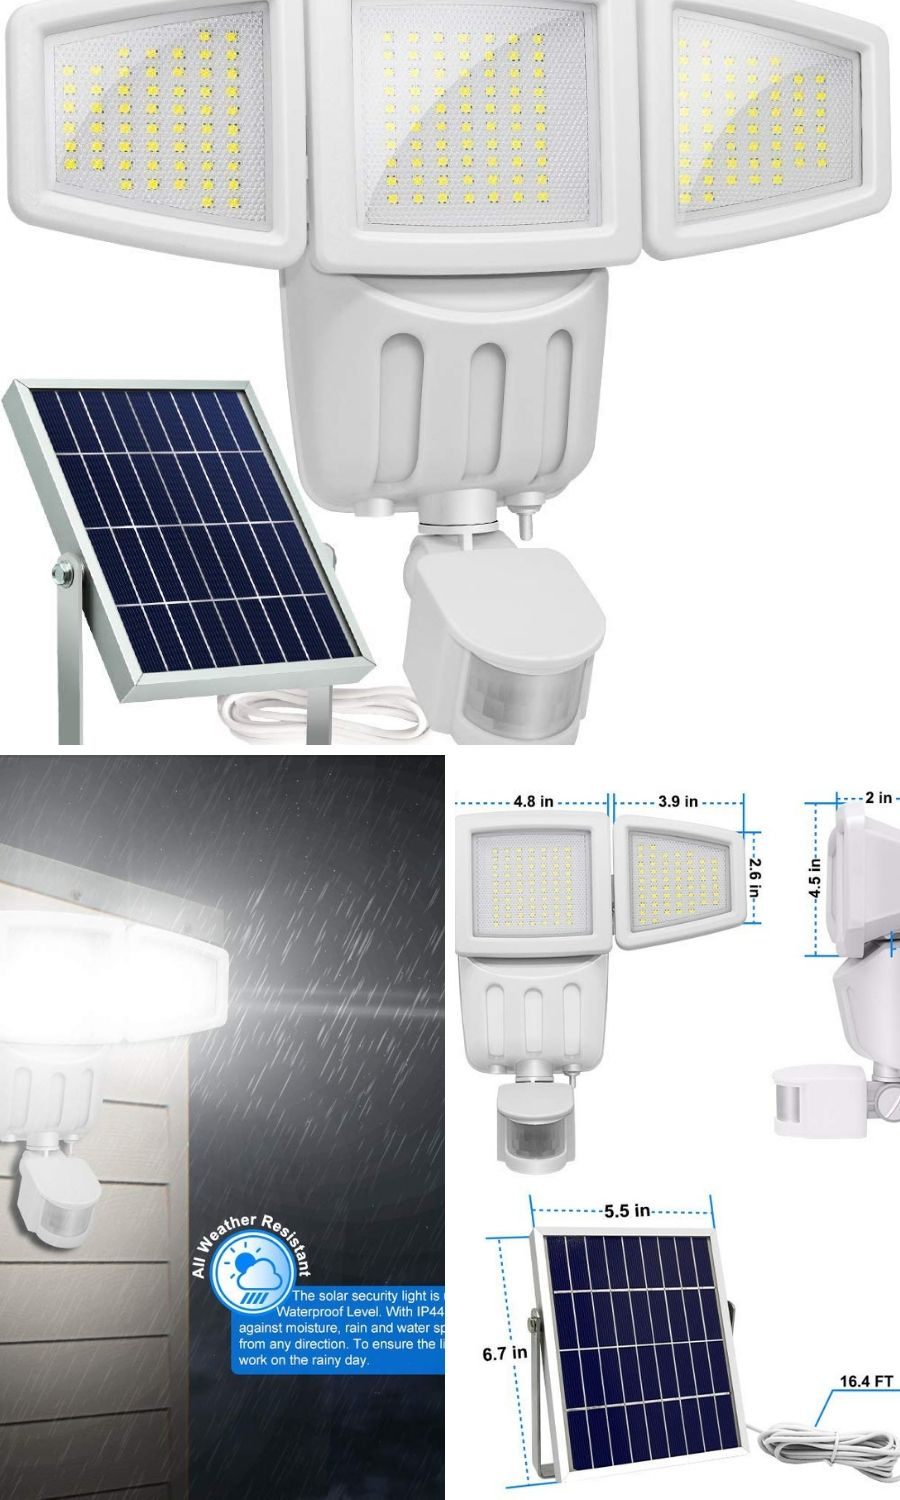 Brighter Wider Solar Led Lights Great For Your Garage With High Efficiency Solar Panel And Motion Sensor For Your Home Outdoorledlighting Mot Solar Lights